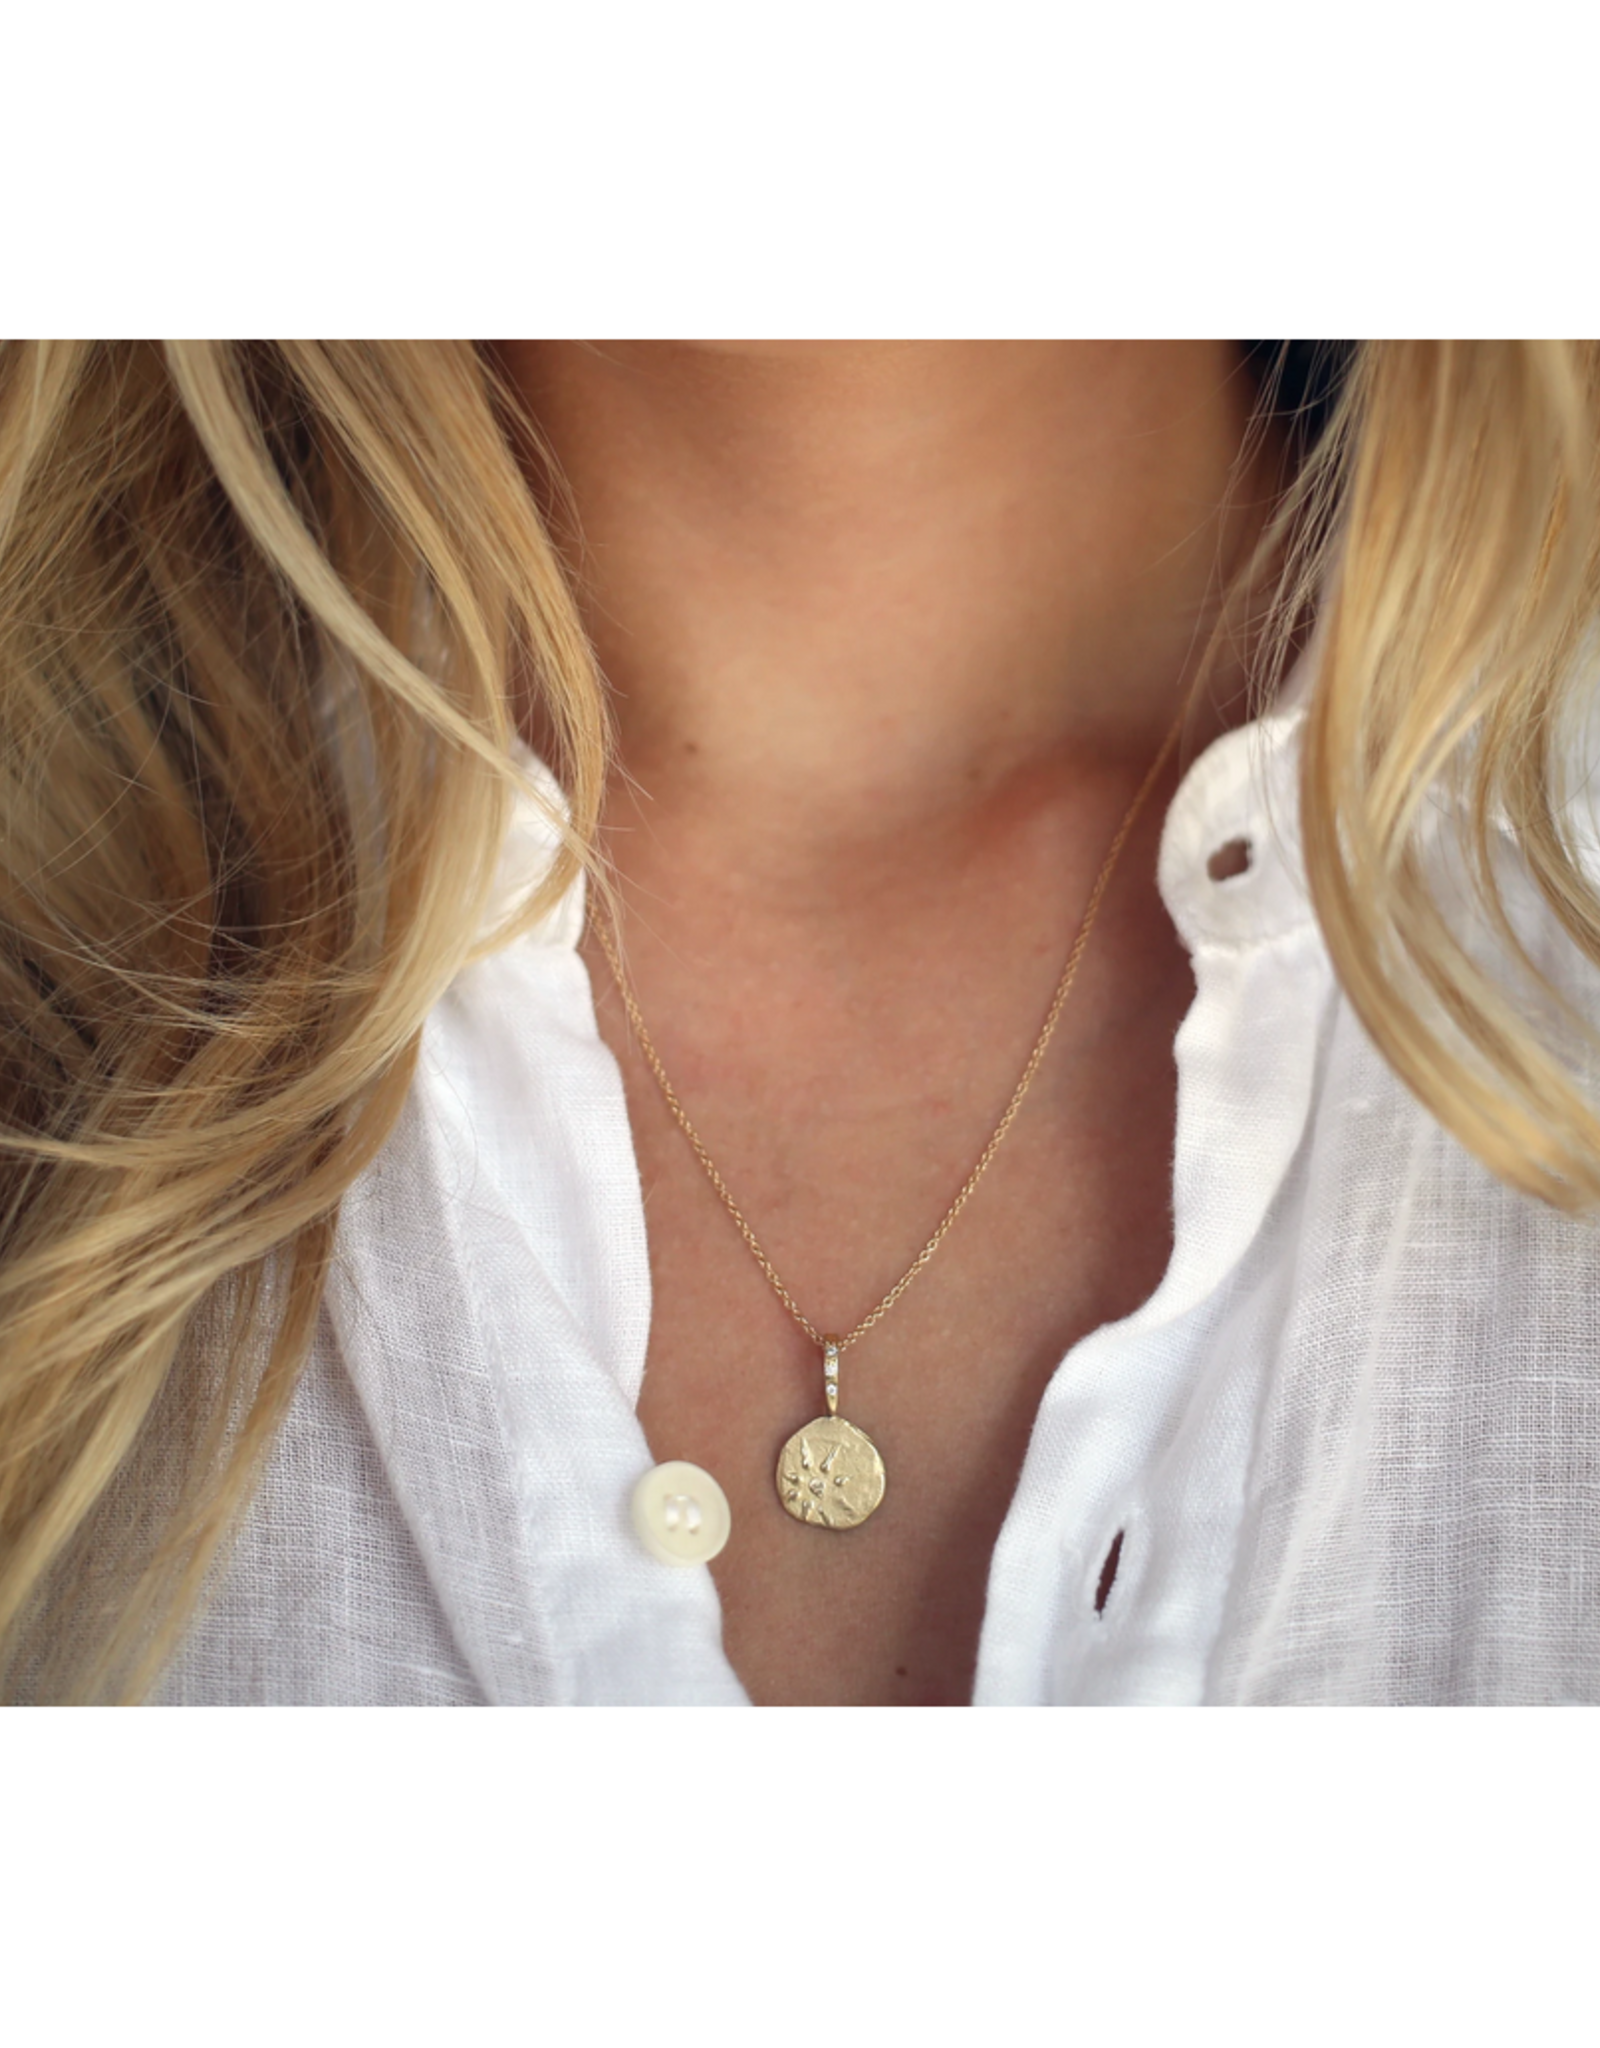 Robin Haley Jewelry Anchored In Gratitude Artifact Necklace